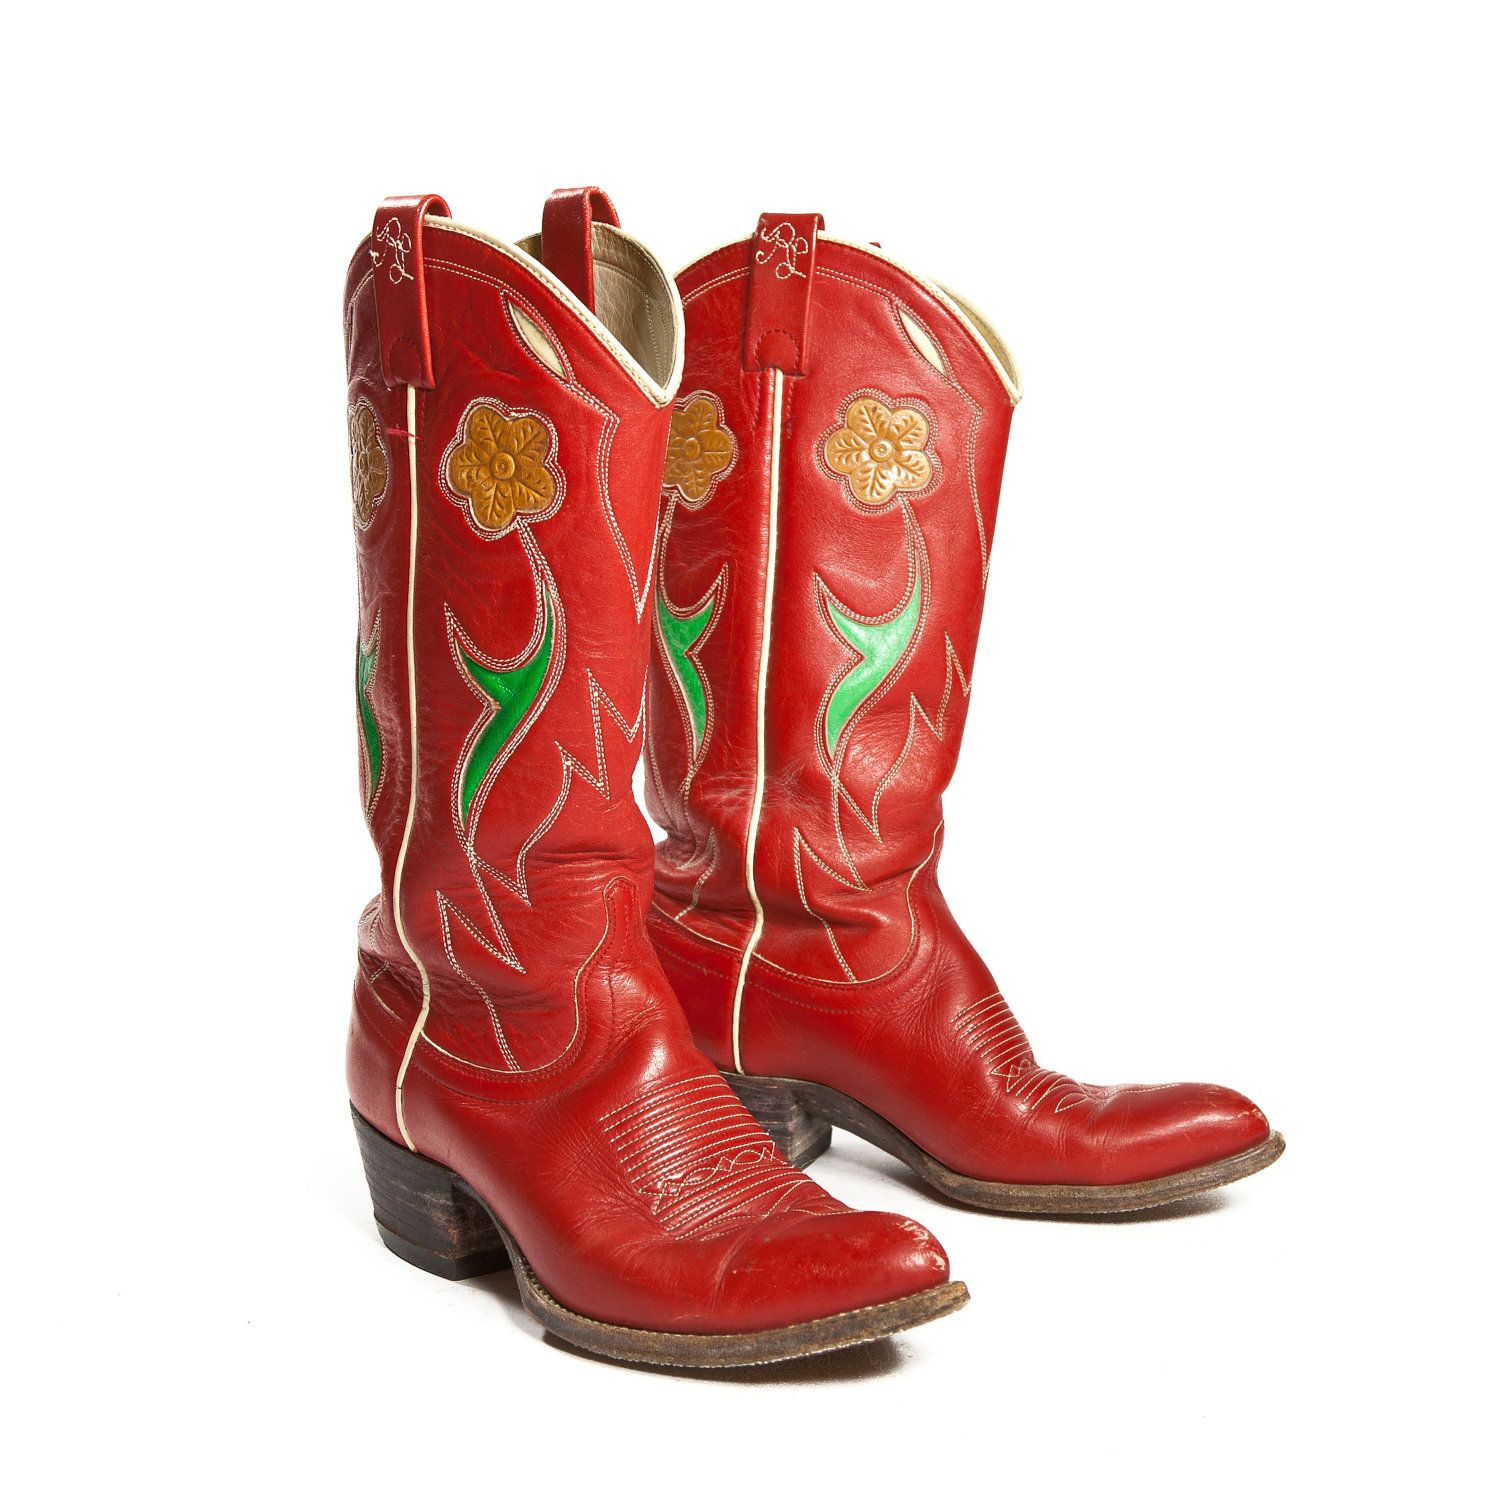 cfe5e4fe435 Vintage Women's Ralph Lauren Western Cowboy Boots Red Leather with ...